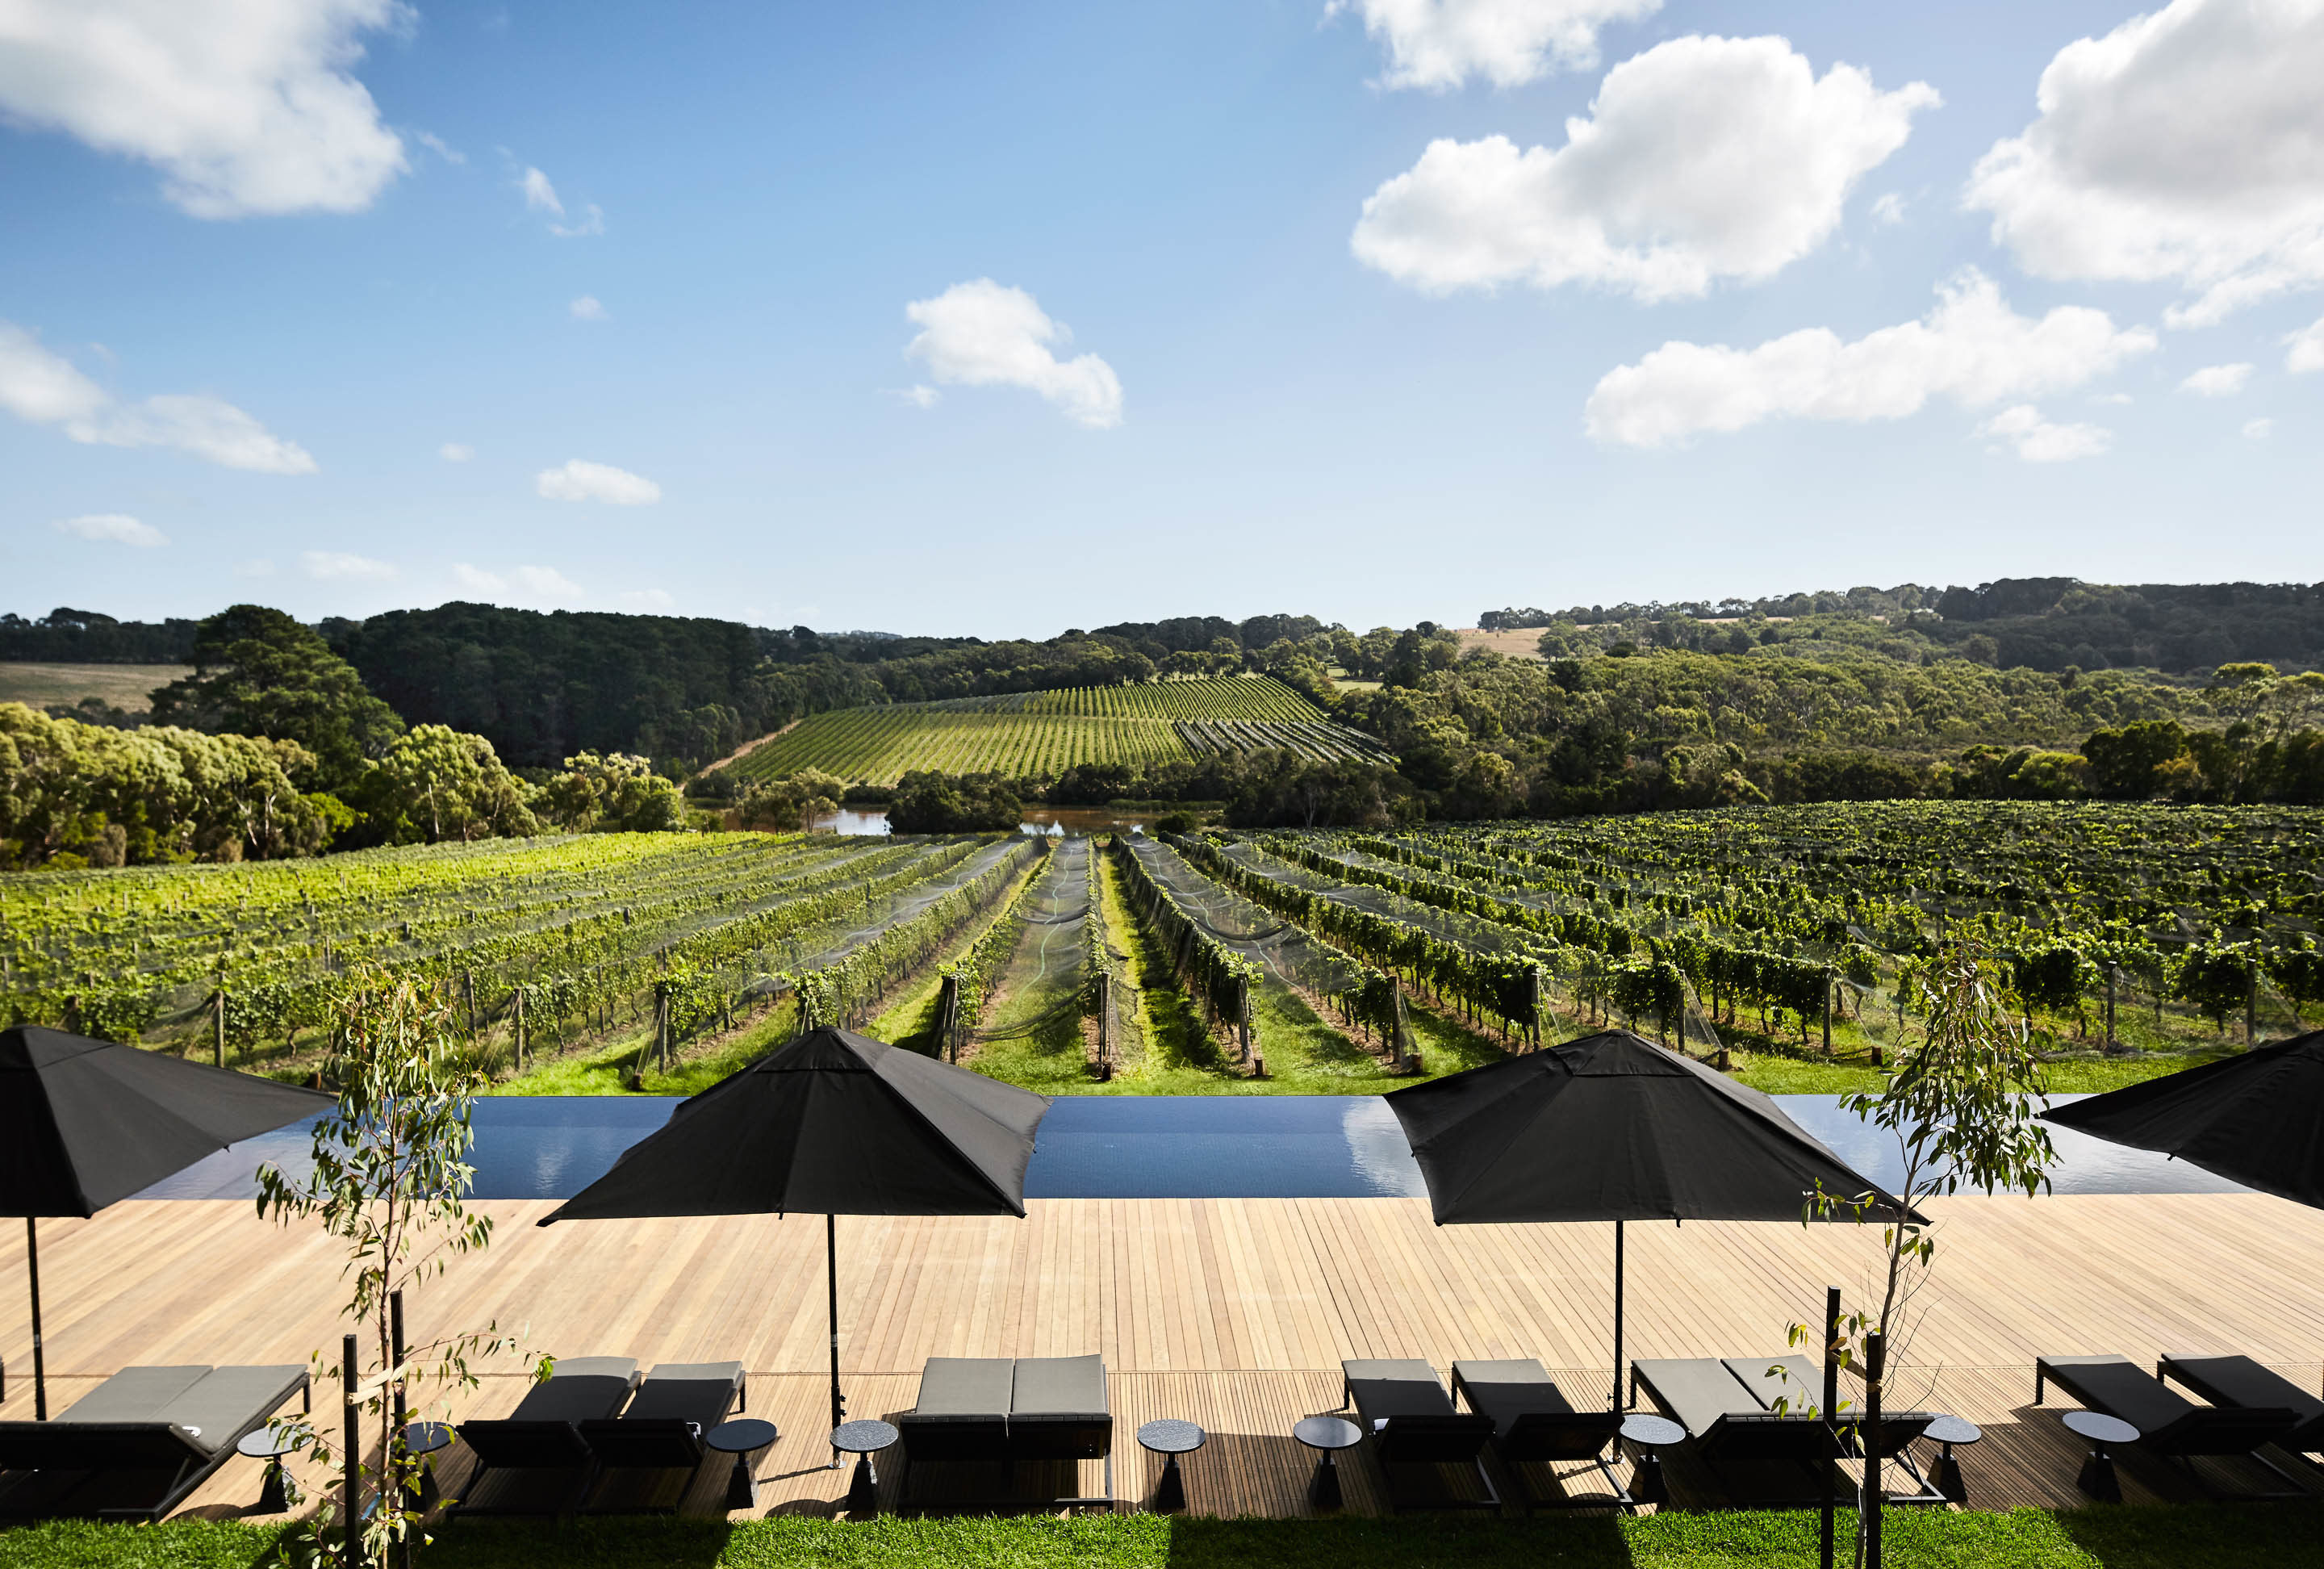 Food + Drink Hotels sky outdoor grass field tent agriculture rural area Farm plant landscape estate real estate plantation tree roof house grassy outdoor object area lush shade